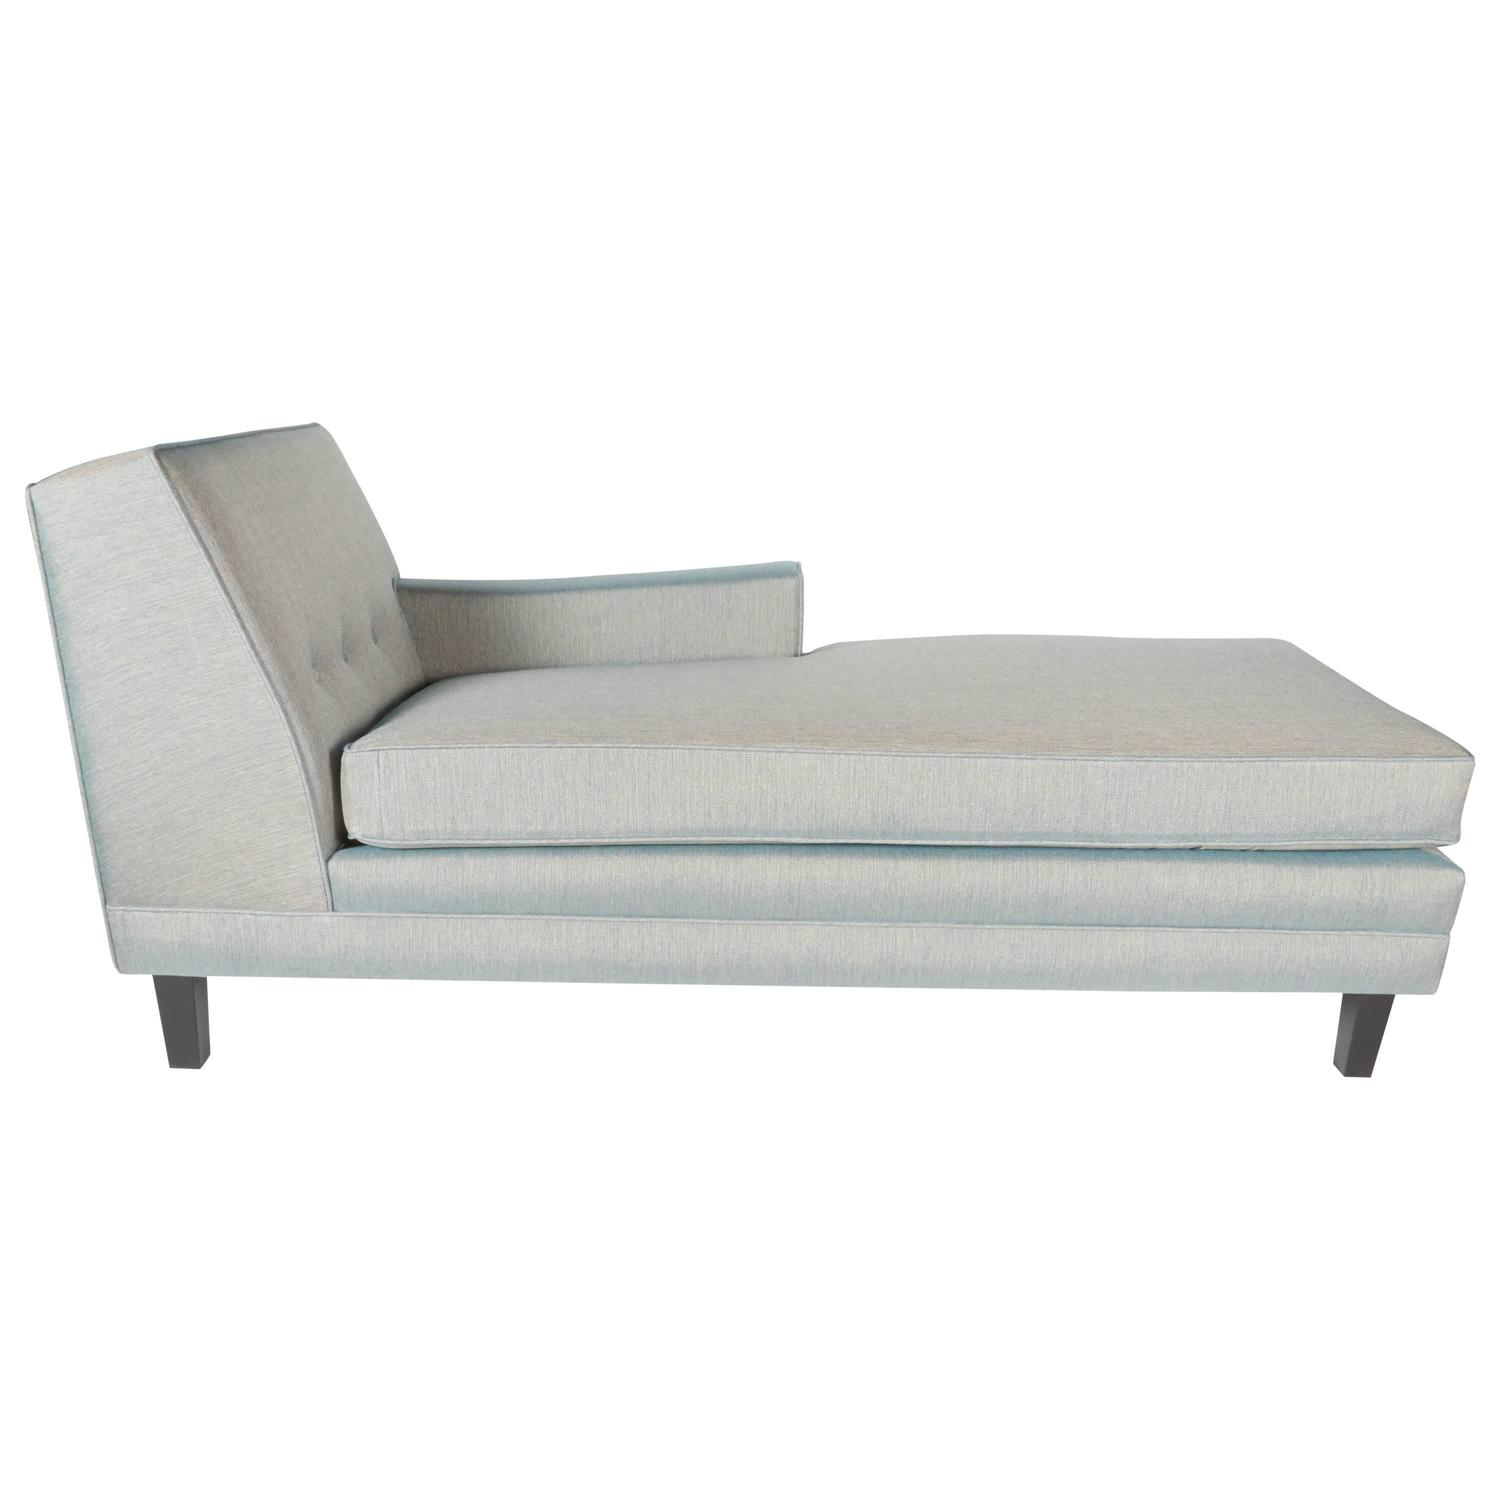 Mid century modern chaise lounge with low profile design for Century furniture chaise lounge